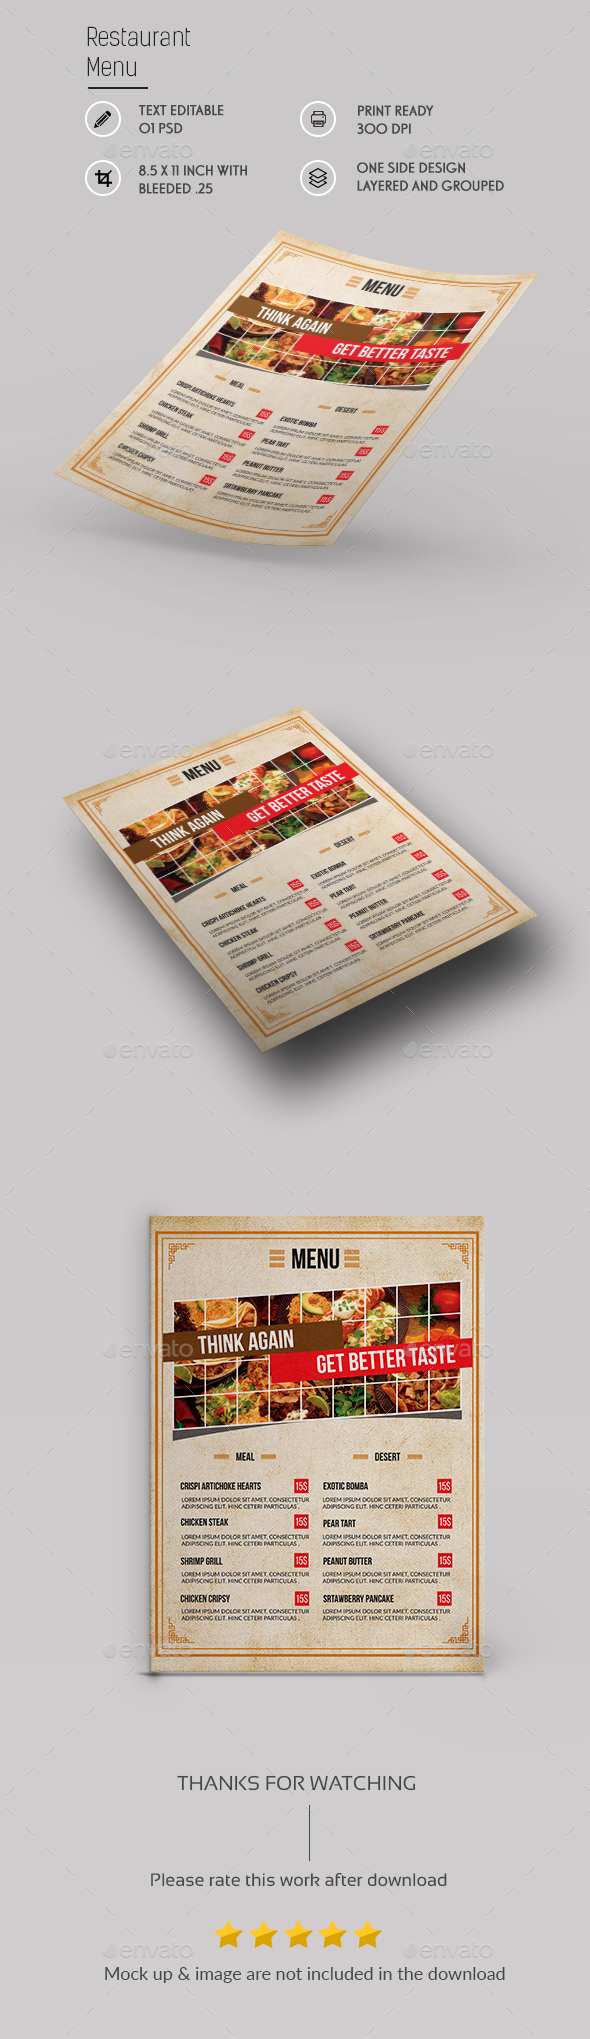 Restaurant Menu Template - Restaurant Flyers